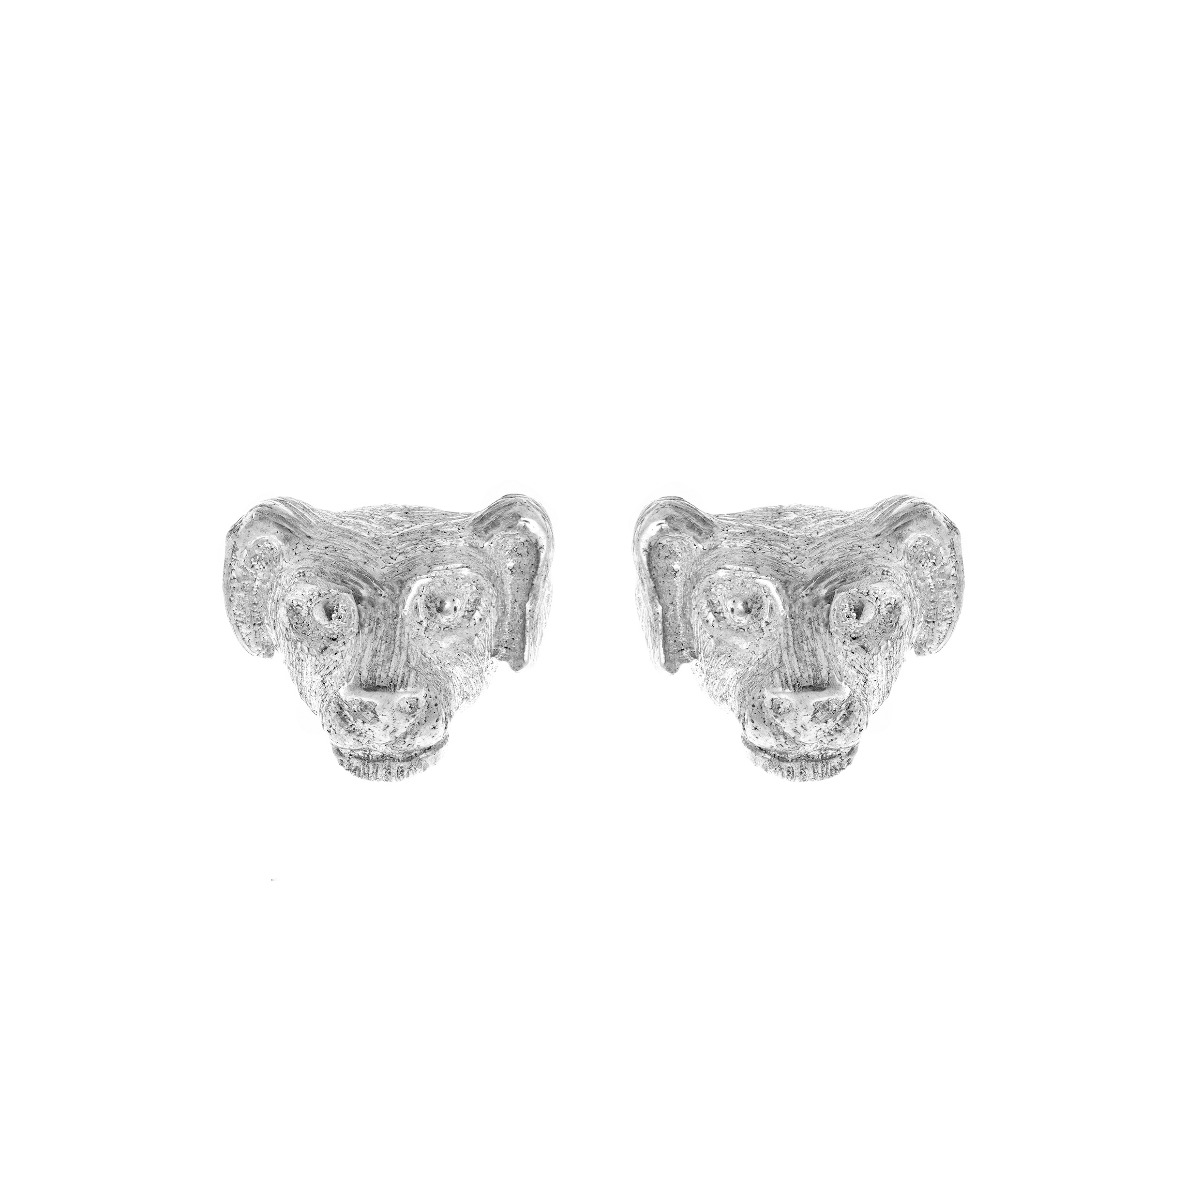 Zodiac East Dog Earring